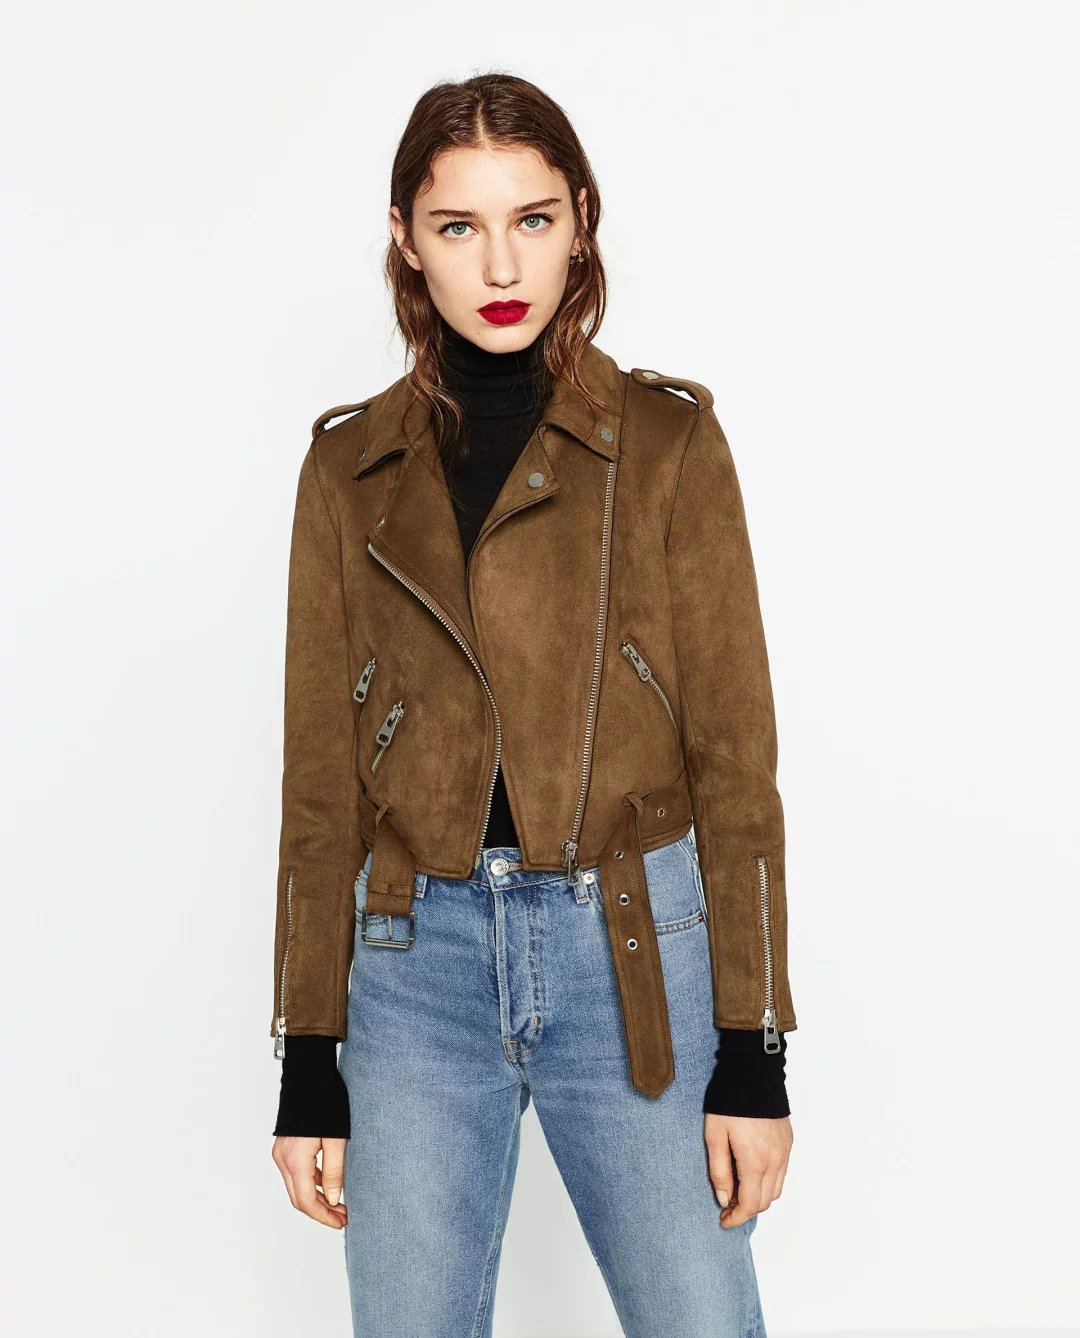 Leather jacket xs - Women Basic Coats 2017 Streetwear Spring Solid Lapel Zippers Sashes Suede Motorcycle Fashion Faux Leather Jacket Xs L